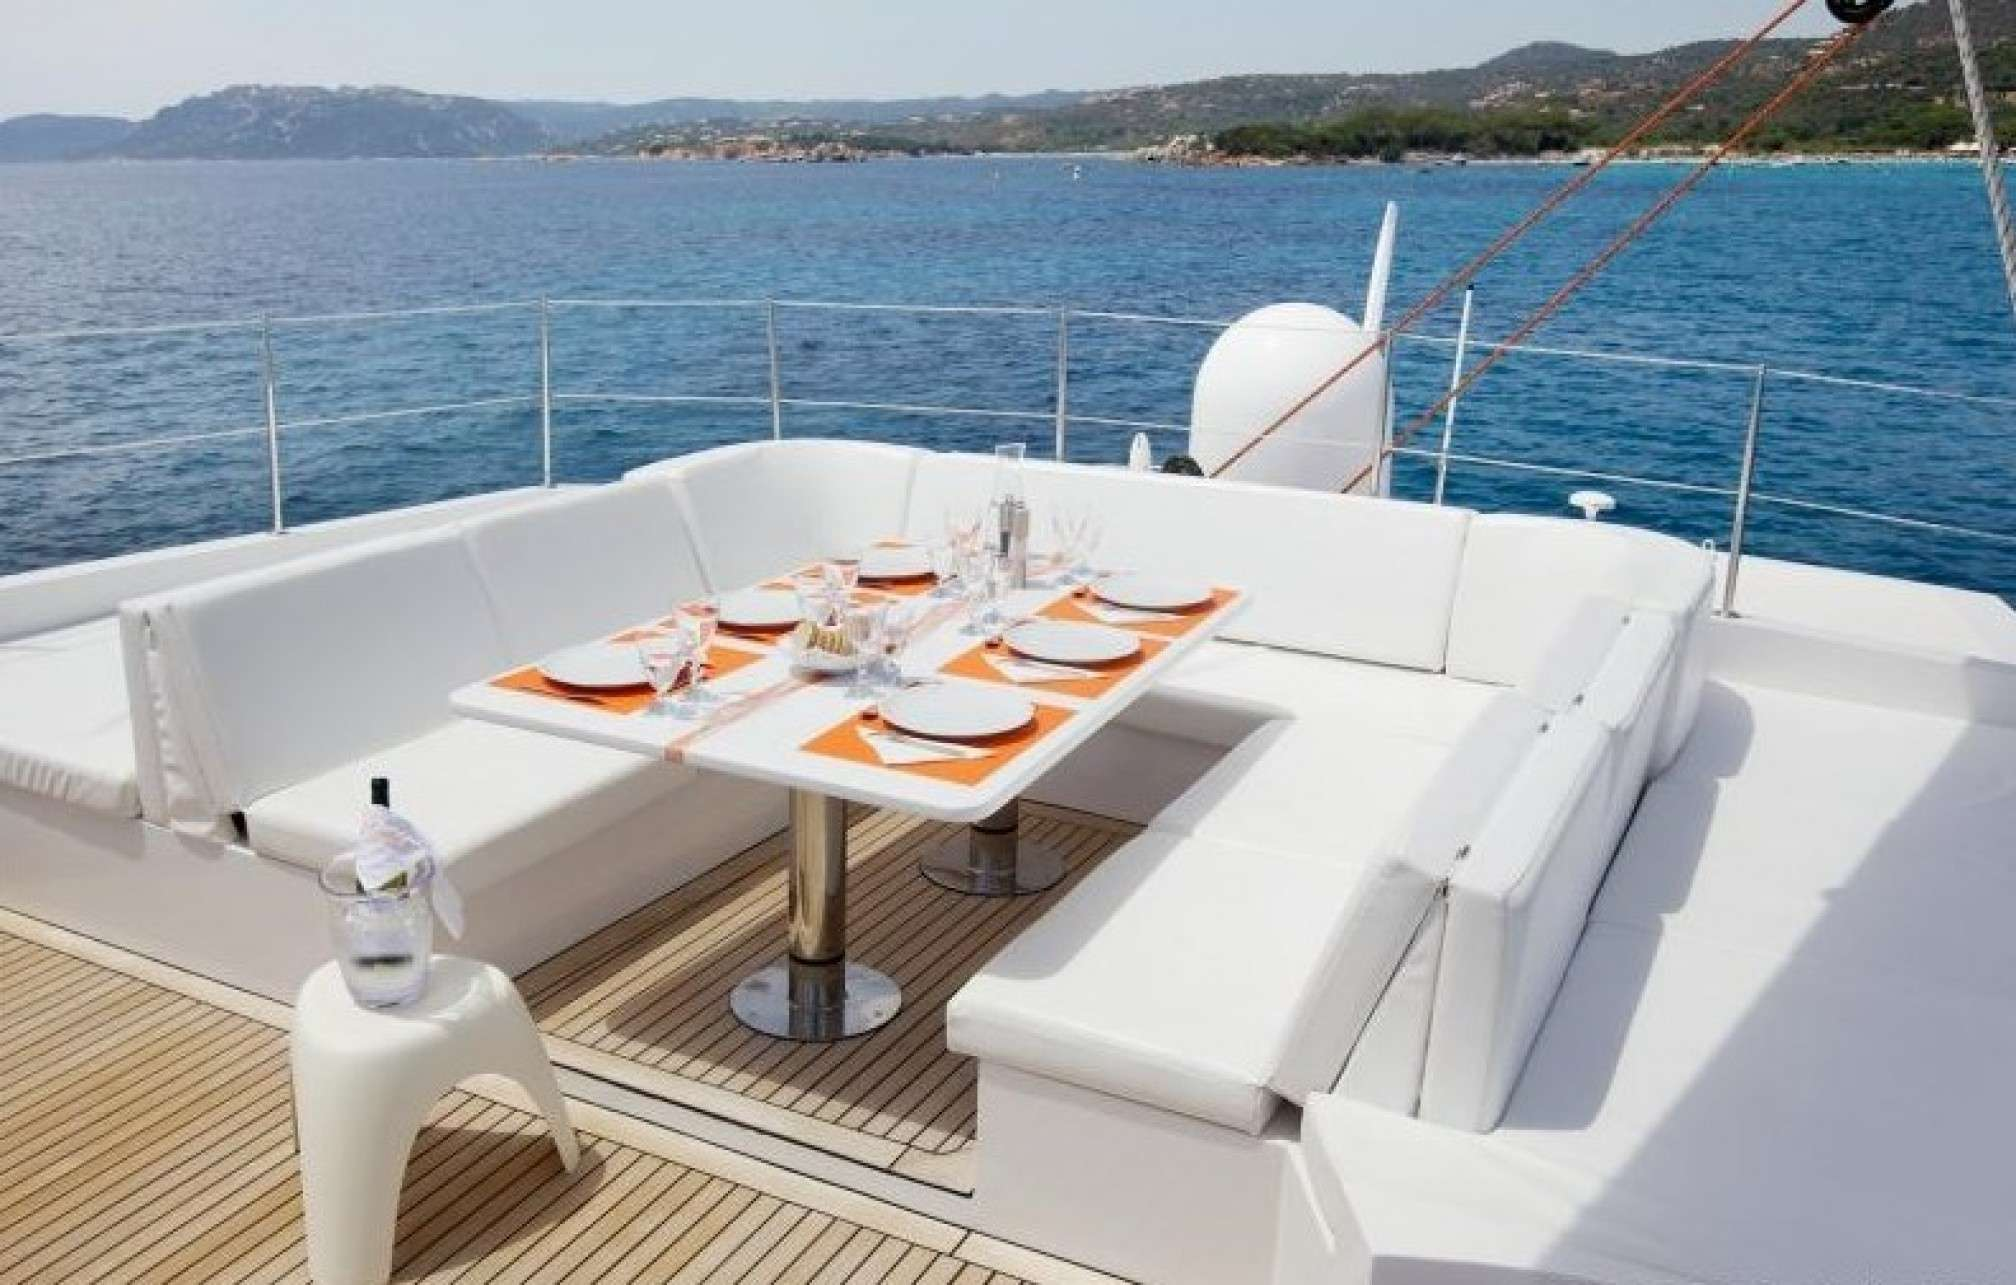 MAITA'I Luxury Catamaran Deck